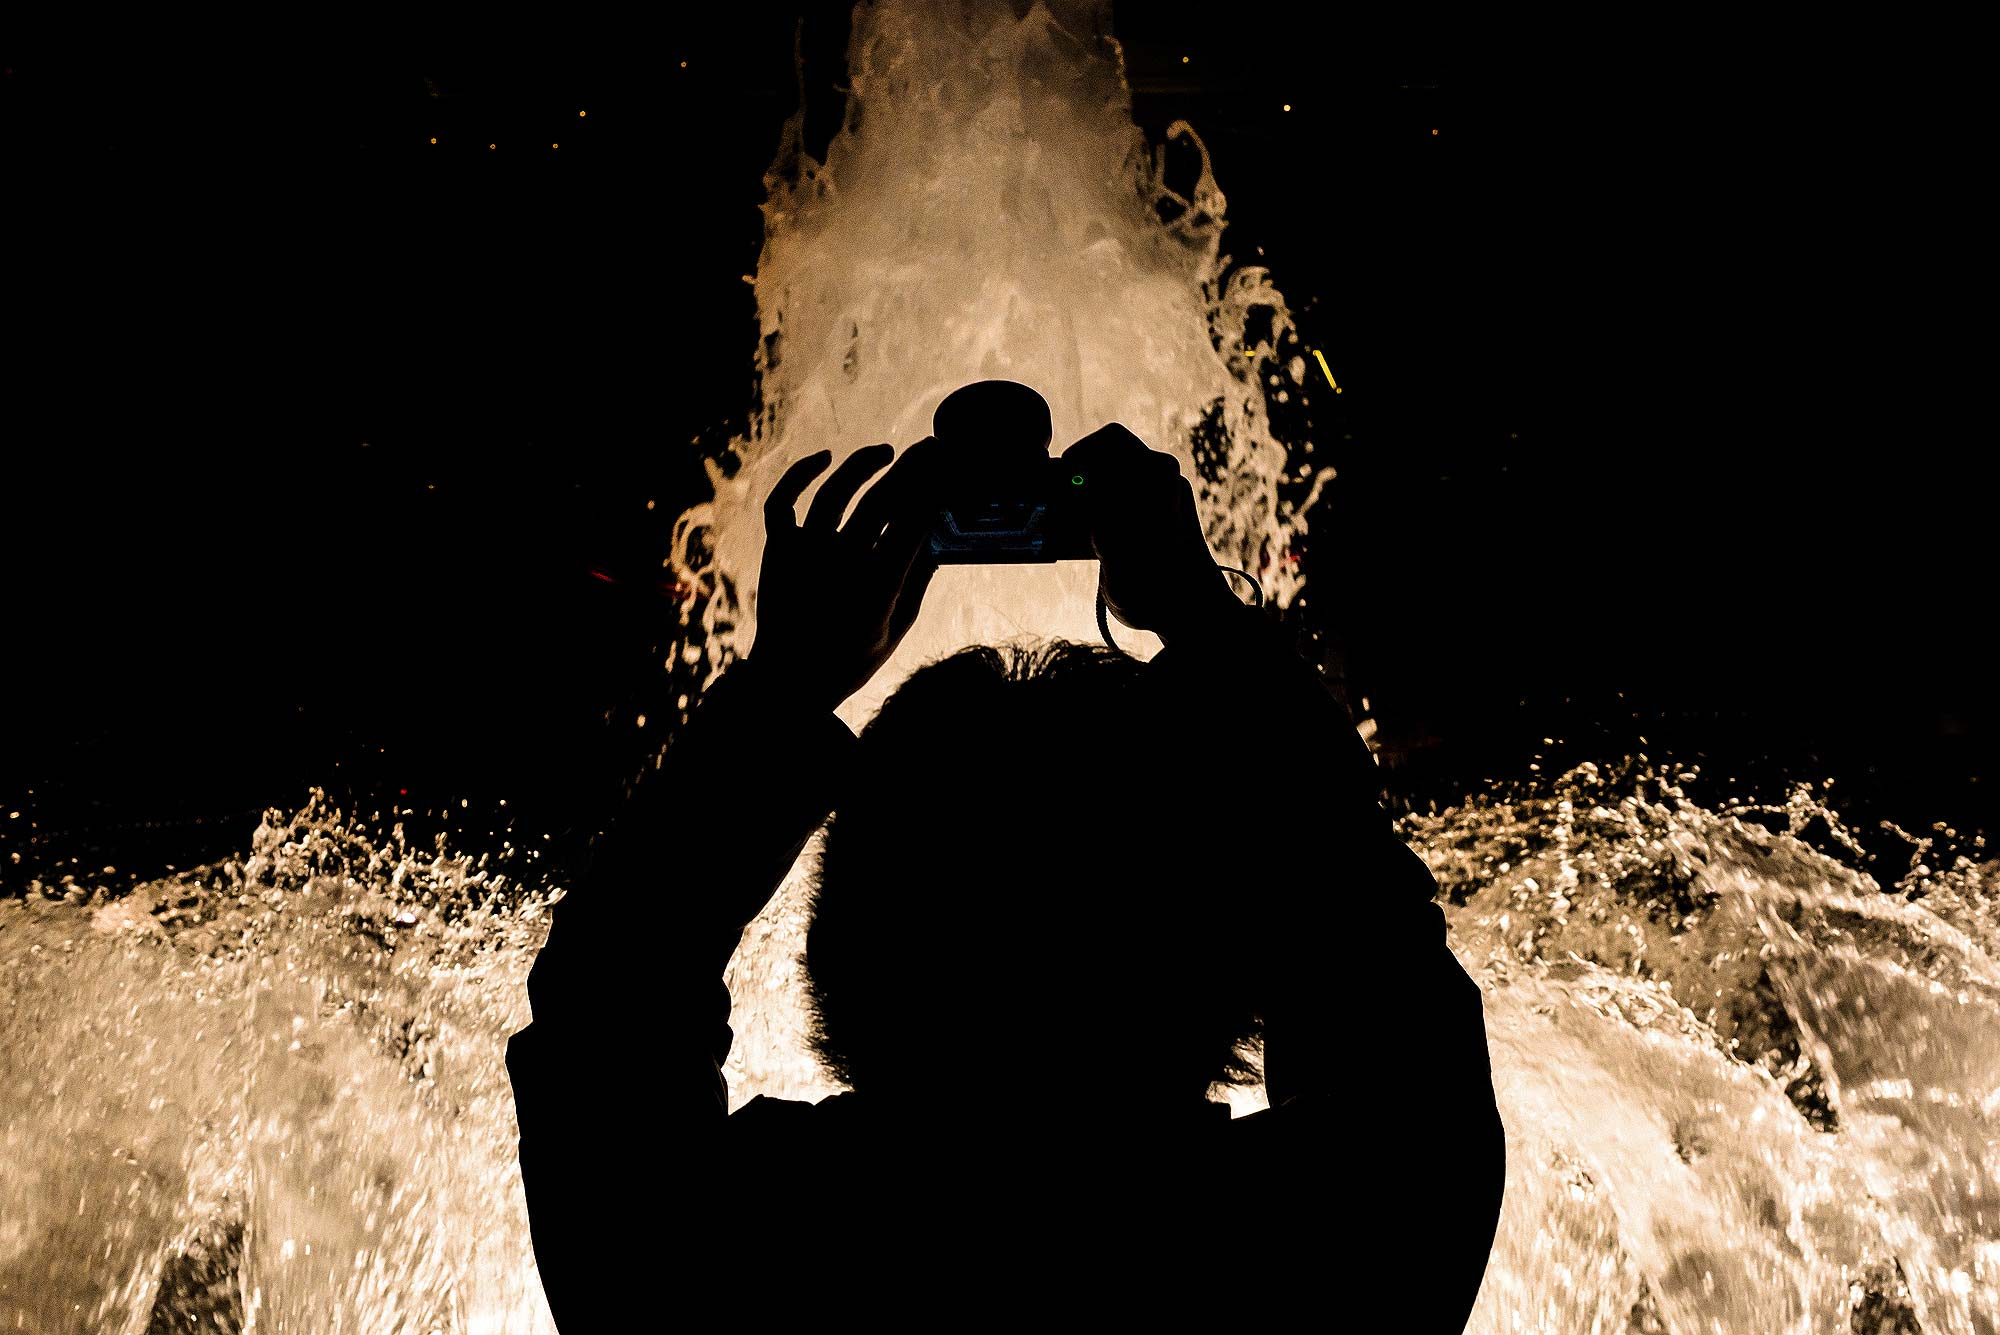 creative silhouette photograph of woman with camera